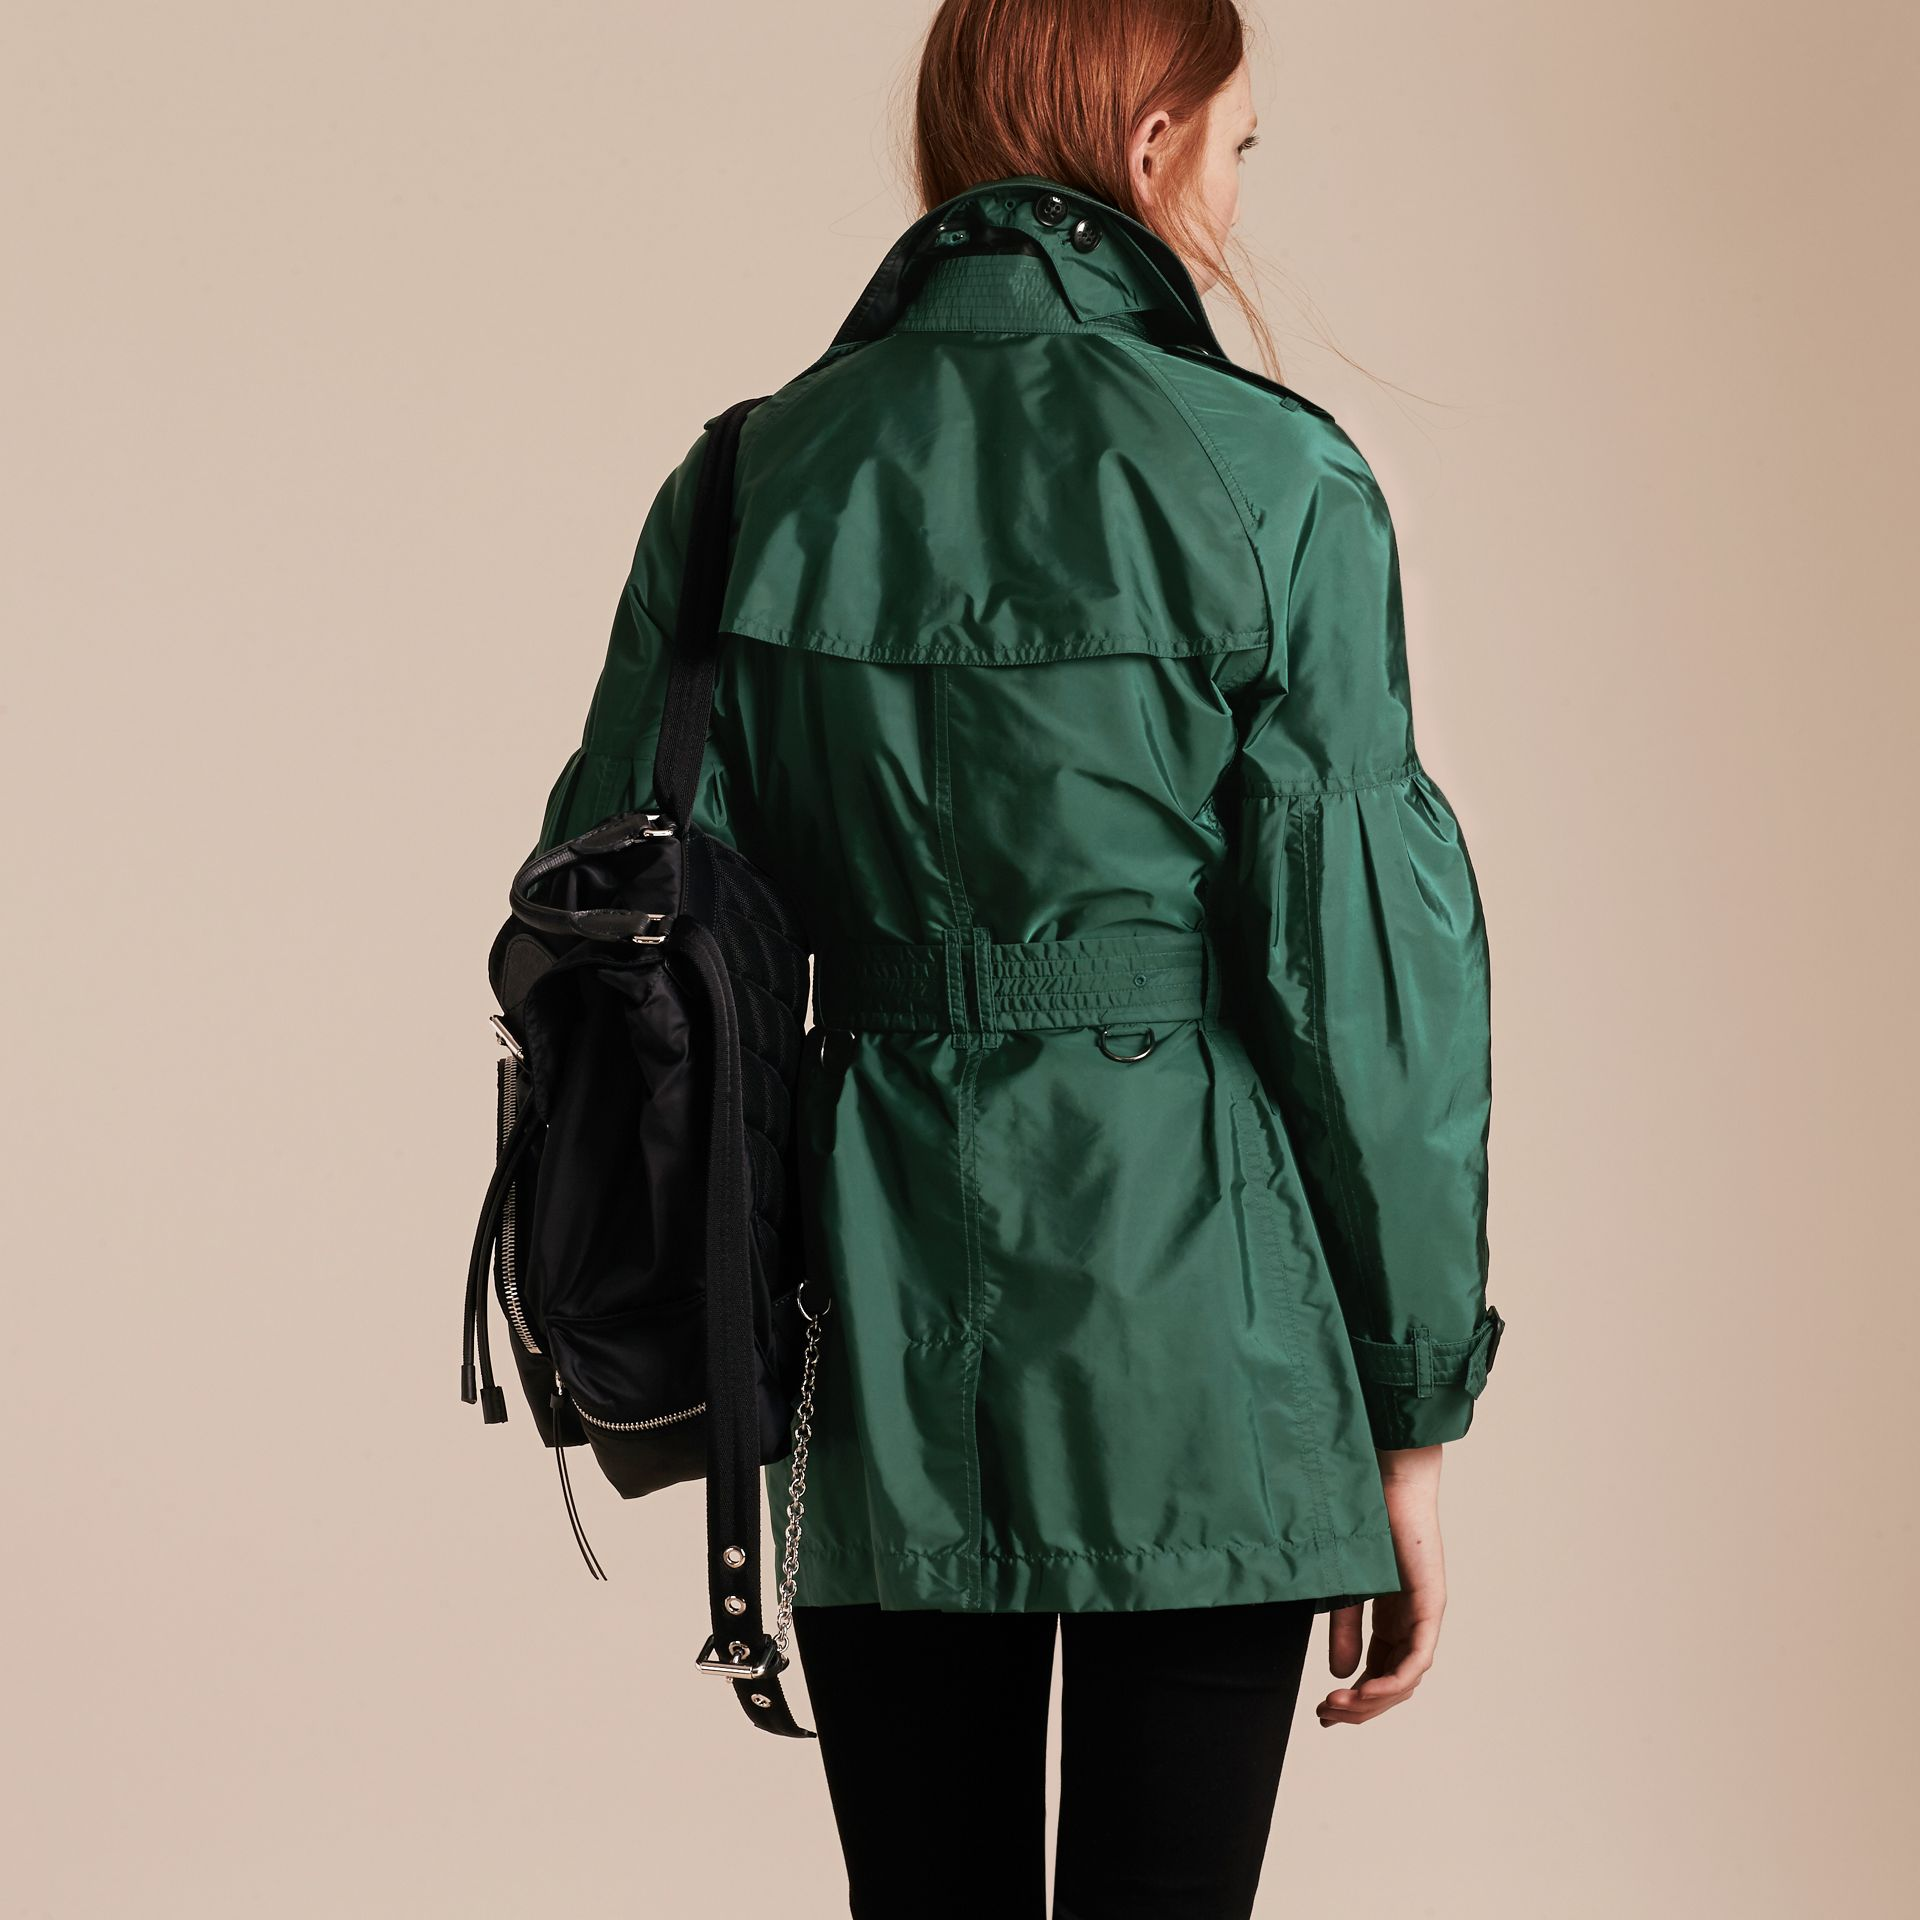 Vert bouteille intense Trench-coat repliable avec manches cloches Vert Bouteille Intense - photo de la galerie 3